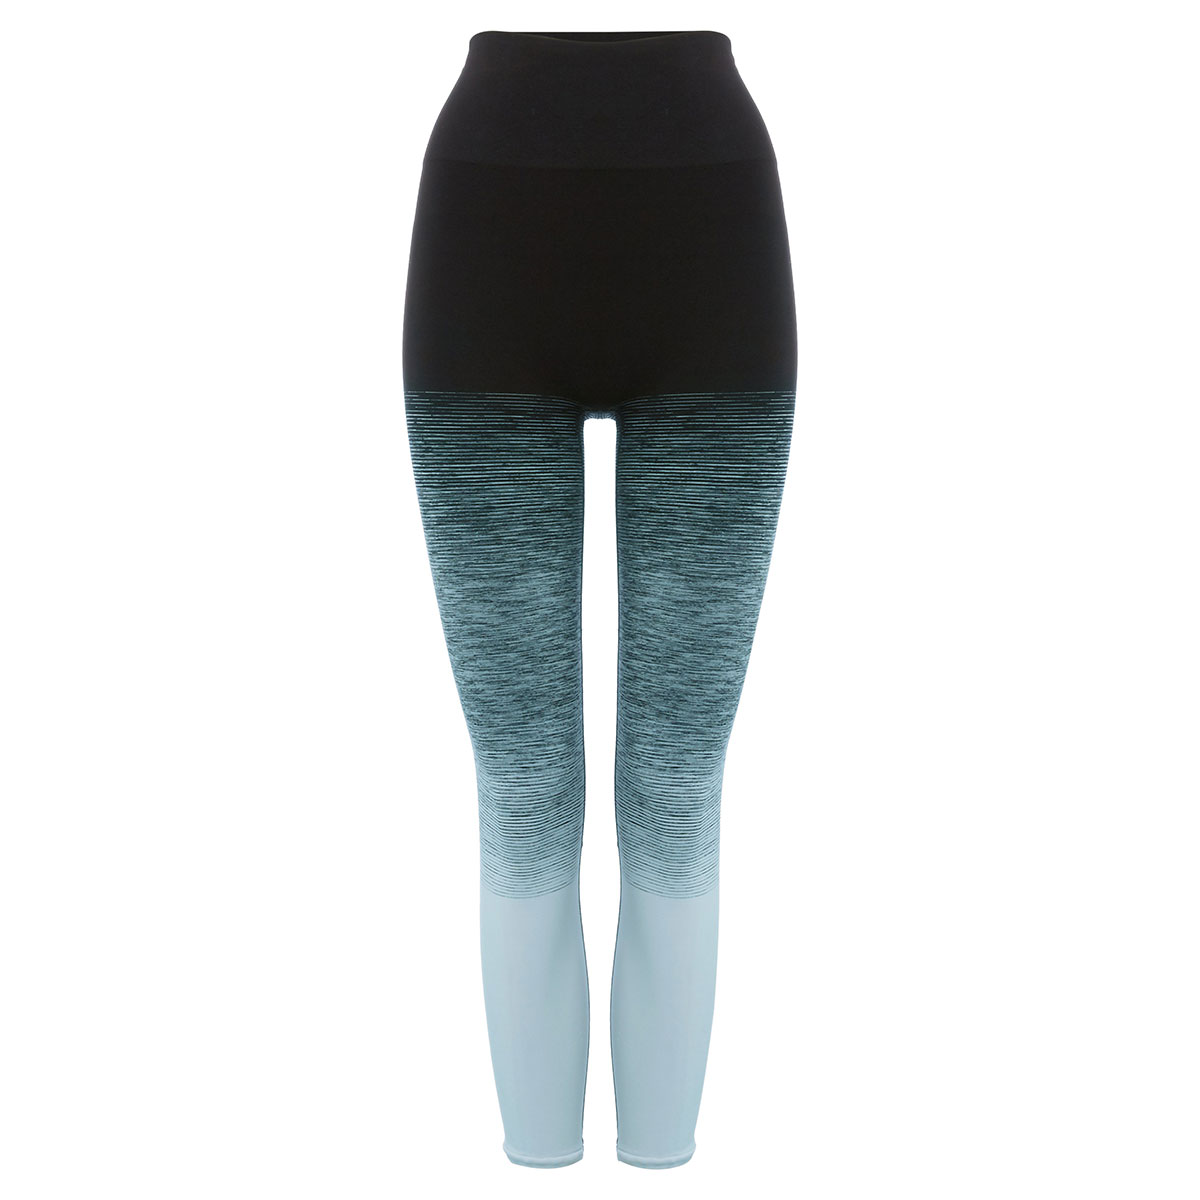 a270f0ddd PEPPER   MAYNE Ombre Leggings - Cameo Blue • Strip Boutique